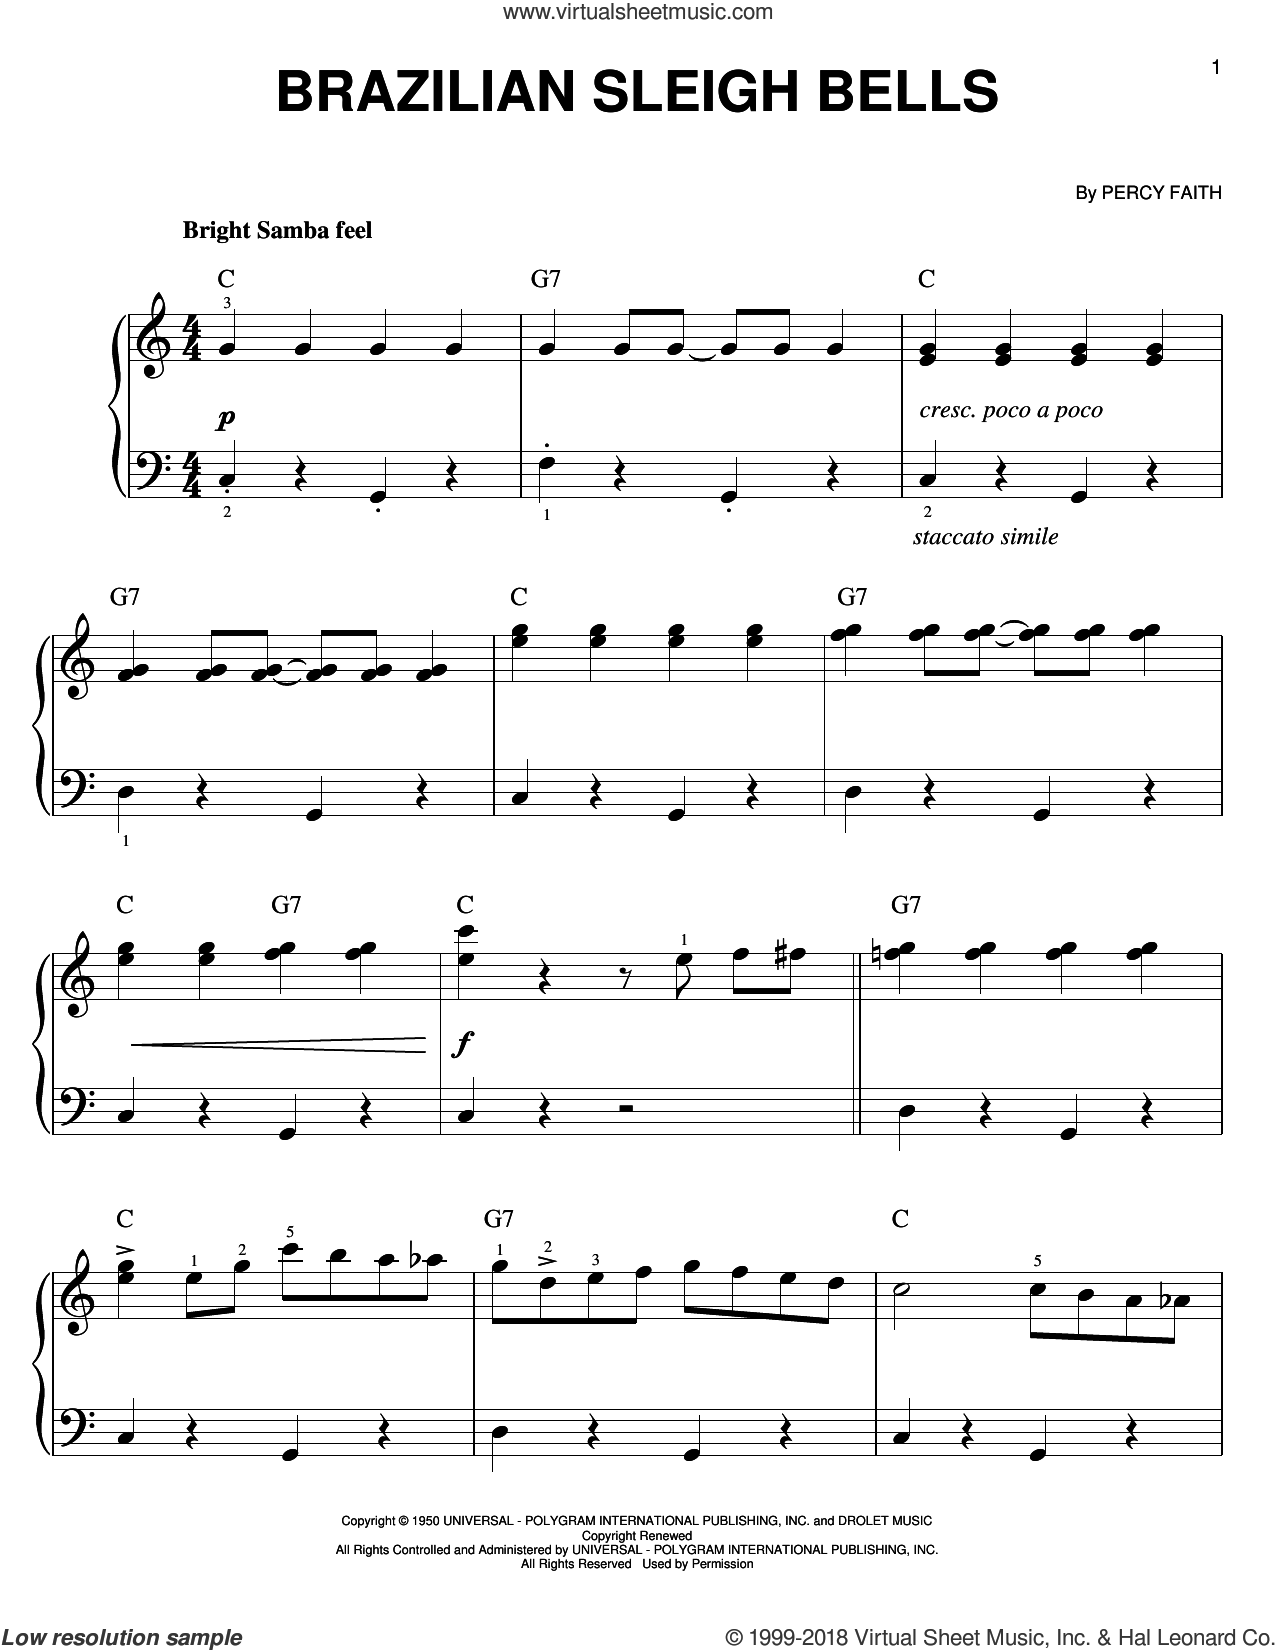 Brazilian Sleigh Bells sheet music for piano solo by Percy Faith, easy skill level